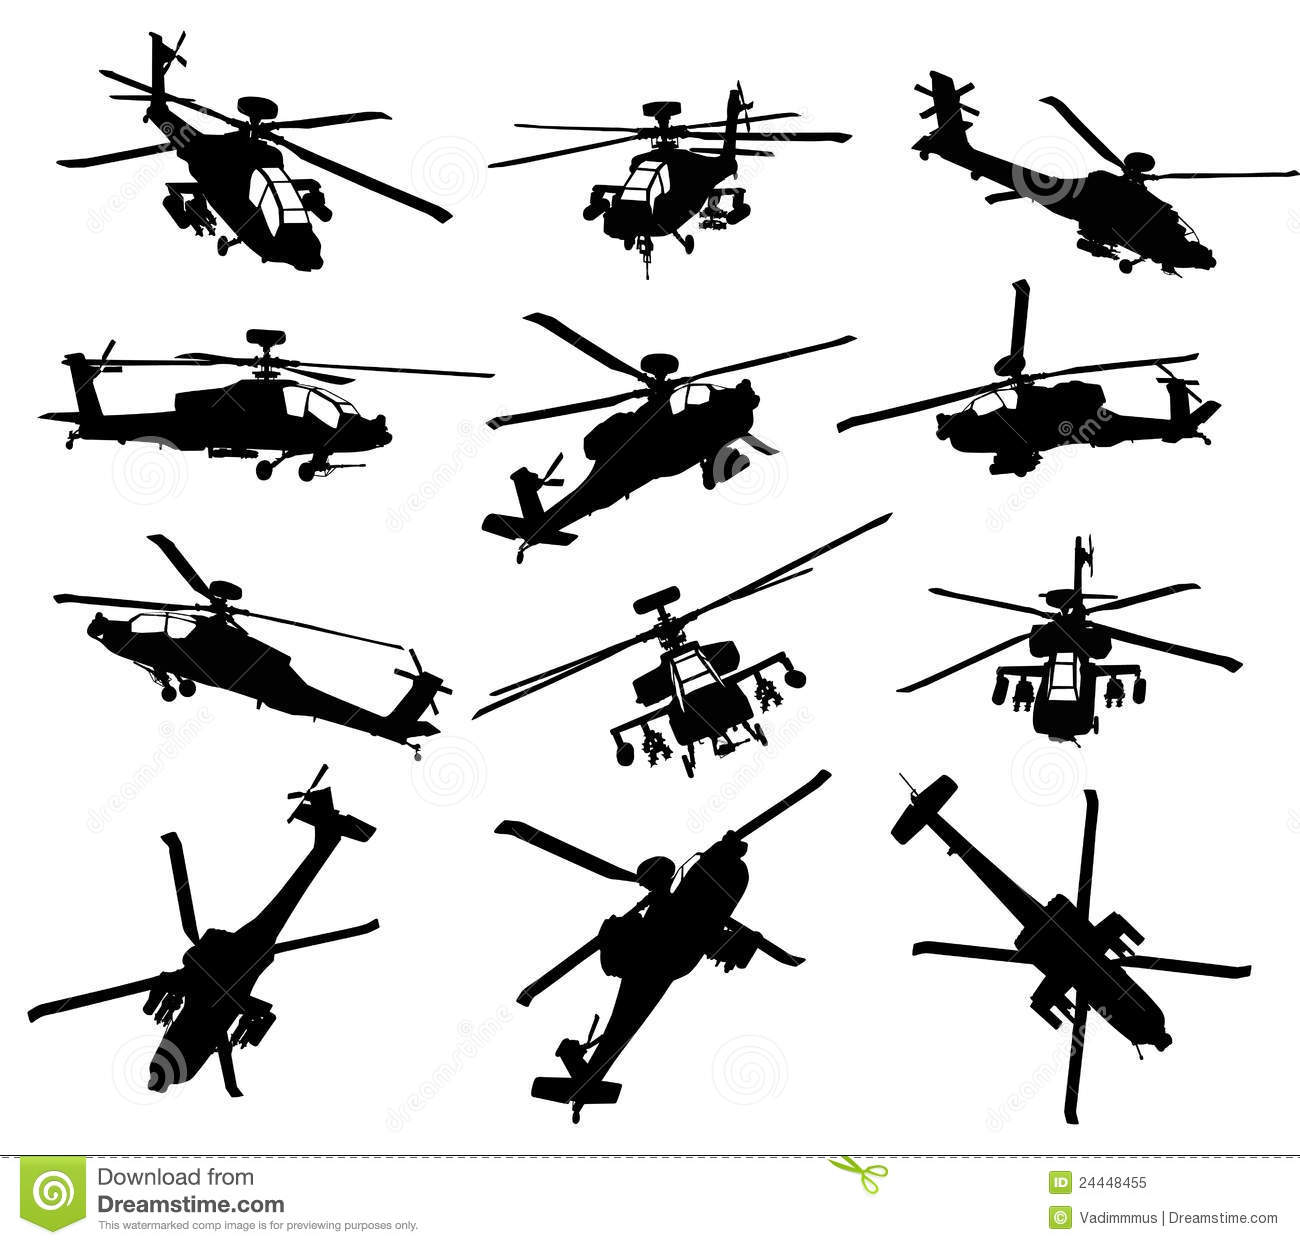 apache longbow helicopter with Royalty Free Stock Photo Helicopter Silhouettes Set Image24448455 on Fokker 100 Cockpit also Photoshoot Apache Attack Helicopter With Bentleys And Lamborghinis furthermore Royalty Free Stock Photo Ch 47 Chinook Helicopter Image11260565 as well File U S  Soldiers assigned to the 12th  bat Aviation Brigade use an Army AH 64D Apache Longbow helicopter during a  bined arms live Fire operation at the Grafenwoehr Training Area in Bavaria  Germany  June 27th 140627 A HJ139 009 moreover Boeing Ah 64 Apache.